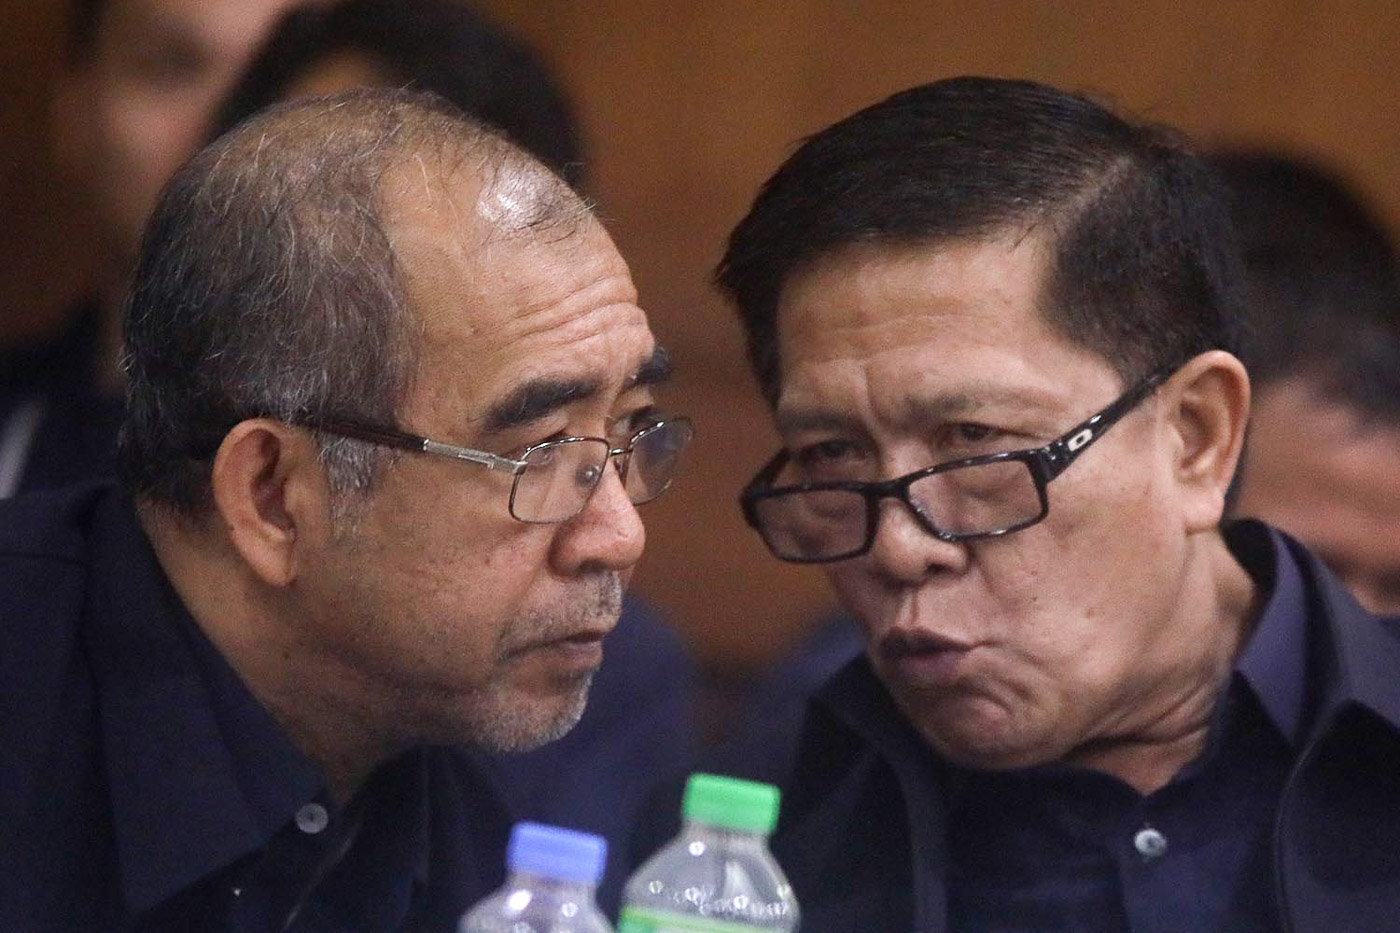 GRILLED. PDEA deputy chiefs Ruel Lasala (L) and Ismael Fajardo (R) at the House probe into the alleged P6.8-billion shabu smuggled through Customs. Photo by Darren Langit/Rappler